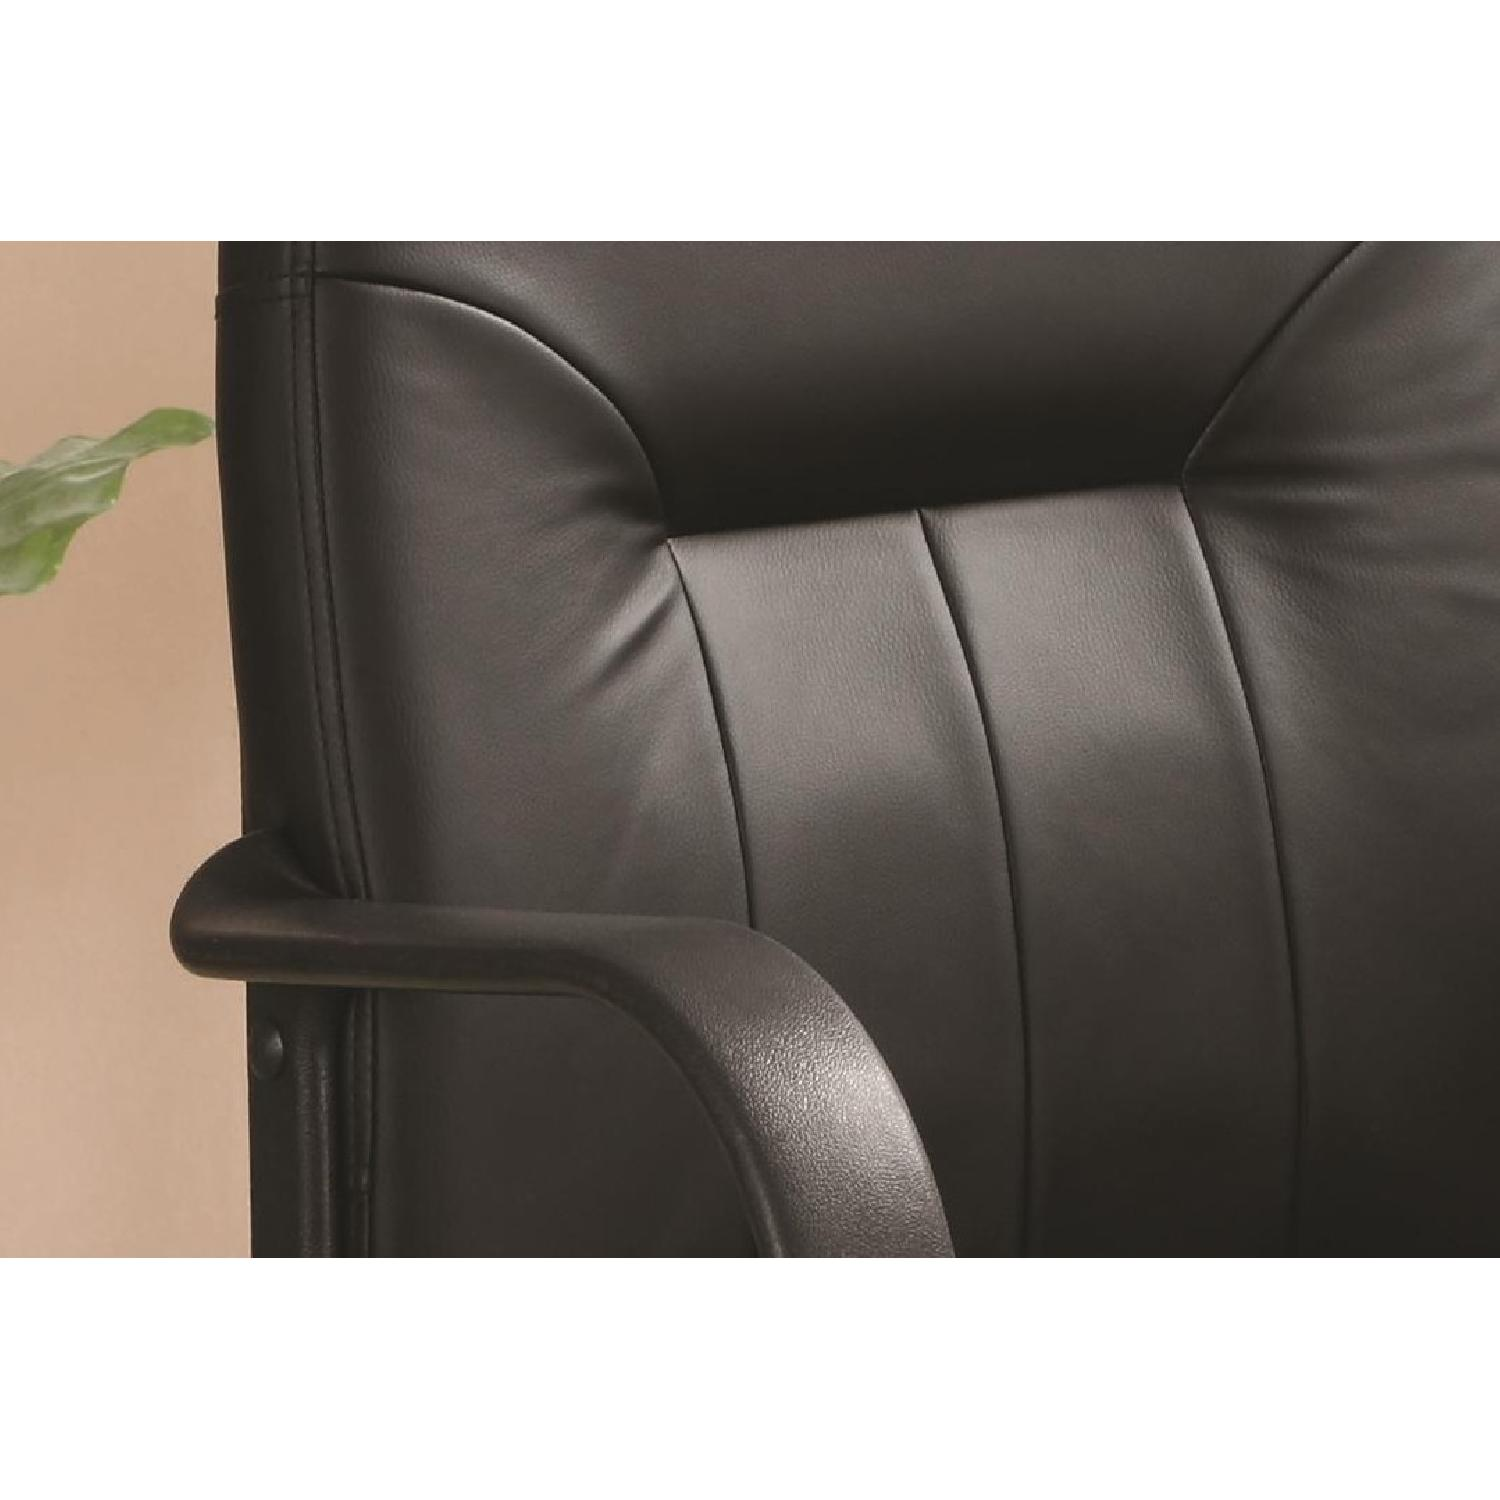 Office Chair in Leather-like Vinyl w/ Arm Rests - image-2